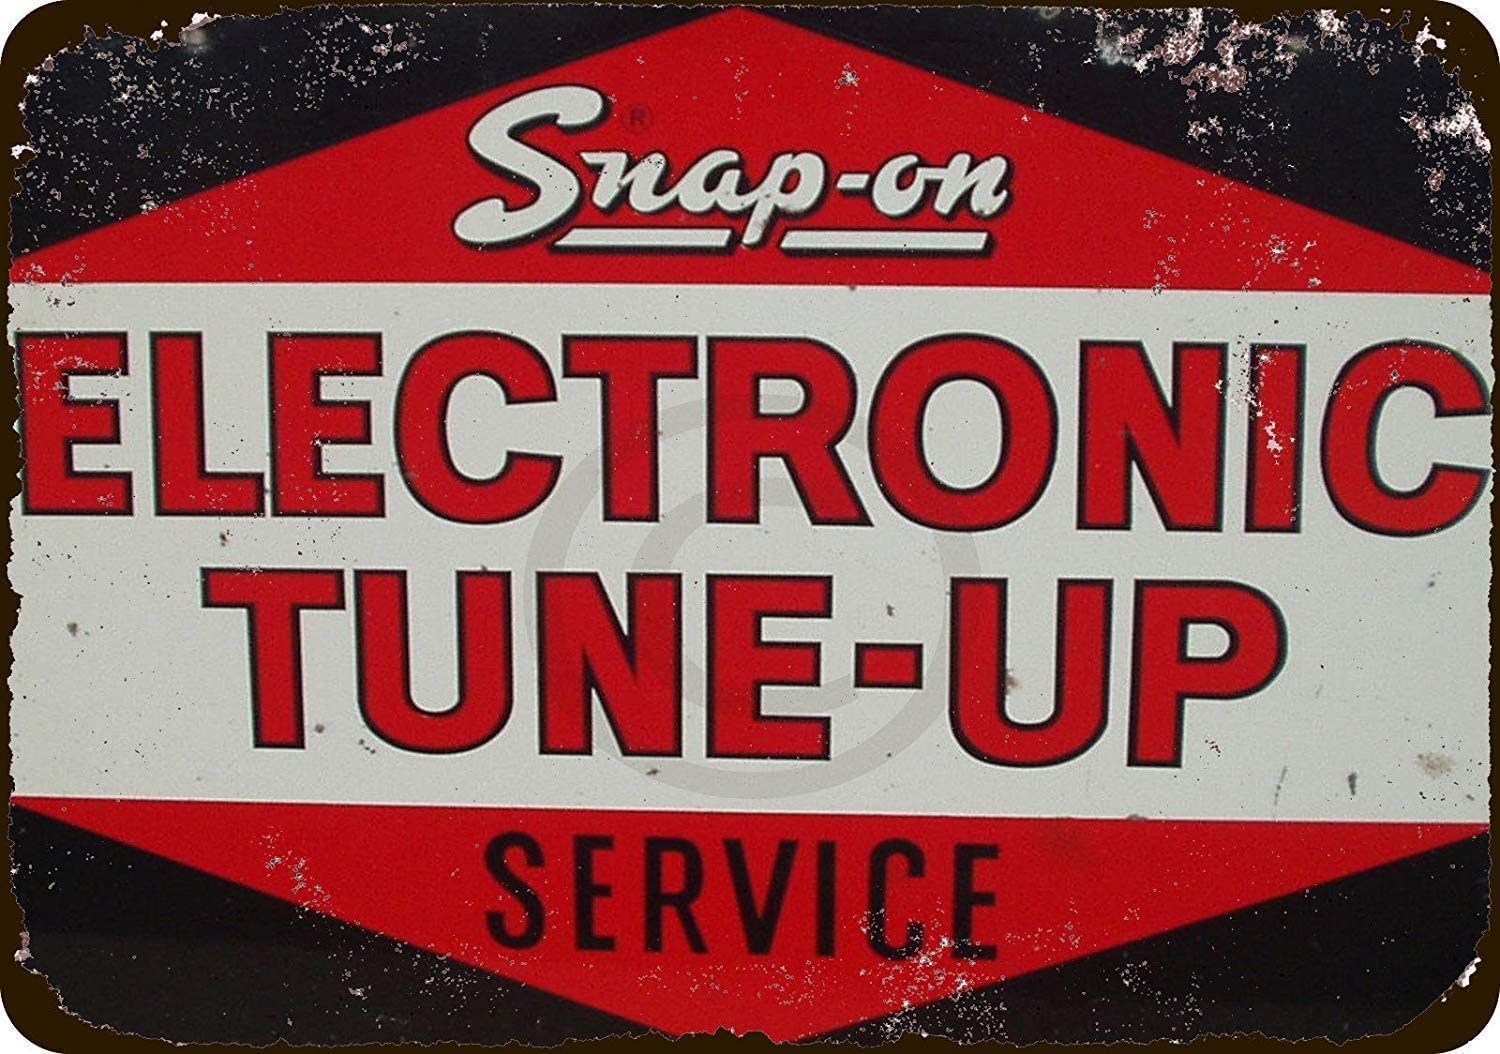 Snap On Electronic Tune Up Service Retro Metal Tin Sign Plaque Poster Wall Decor Art Shabby Chic Gift